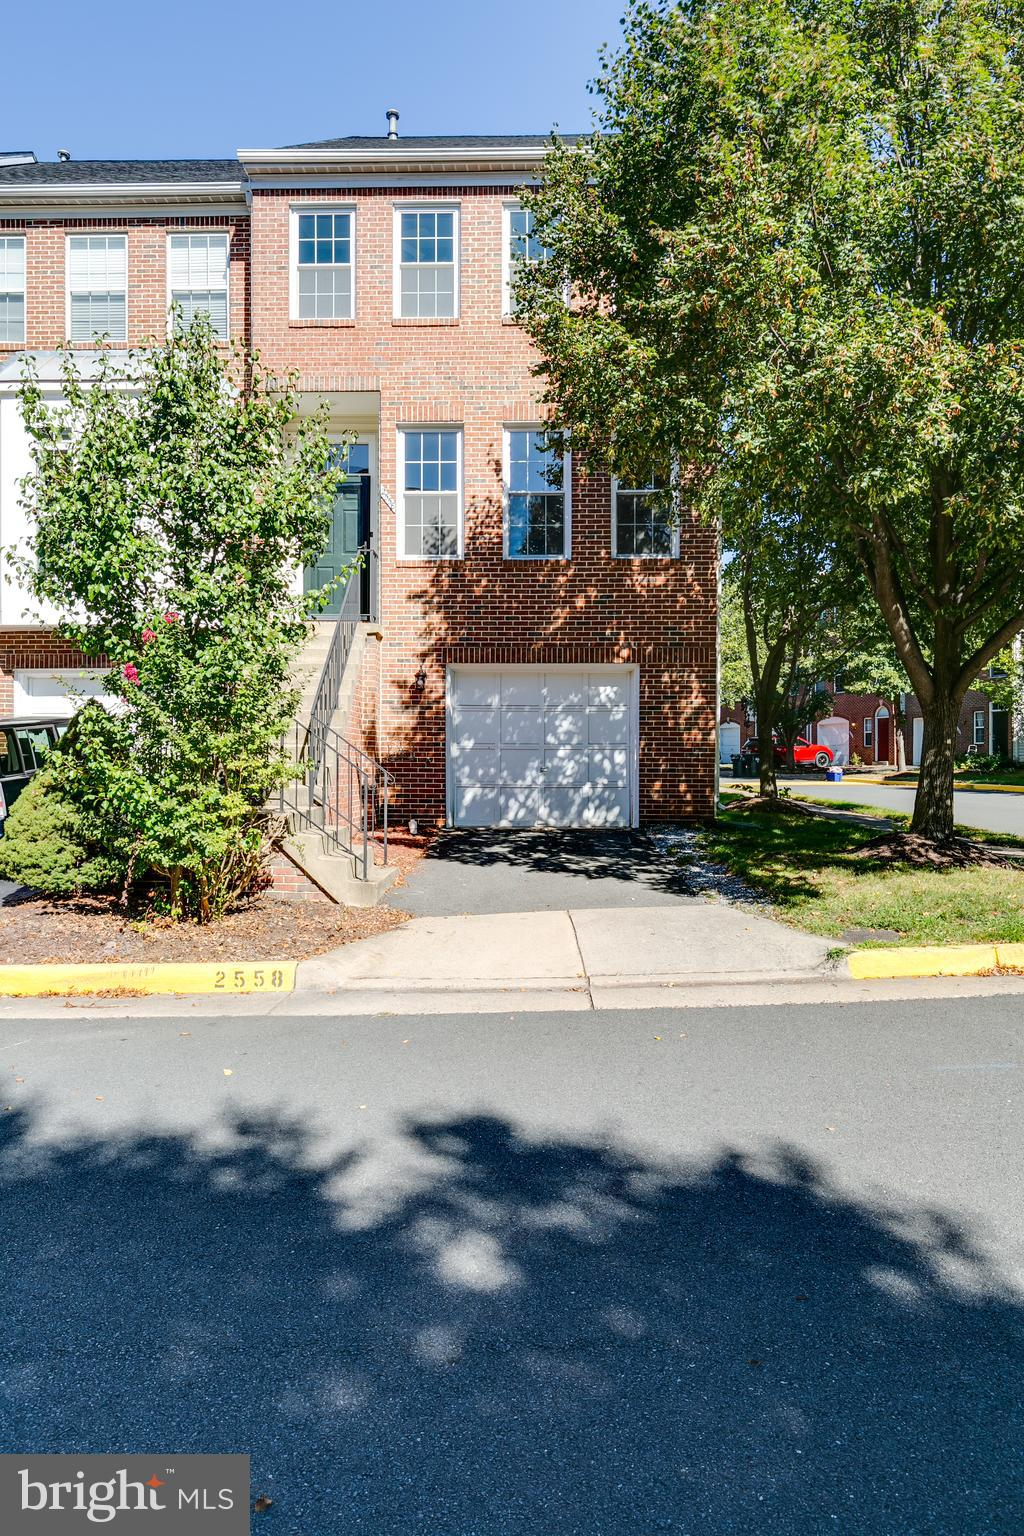 If you have been eager to find a large 2000+ sf end unit townhome, welcome to 2558 James Monroe Circ